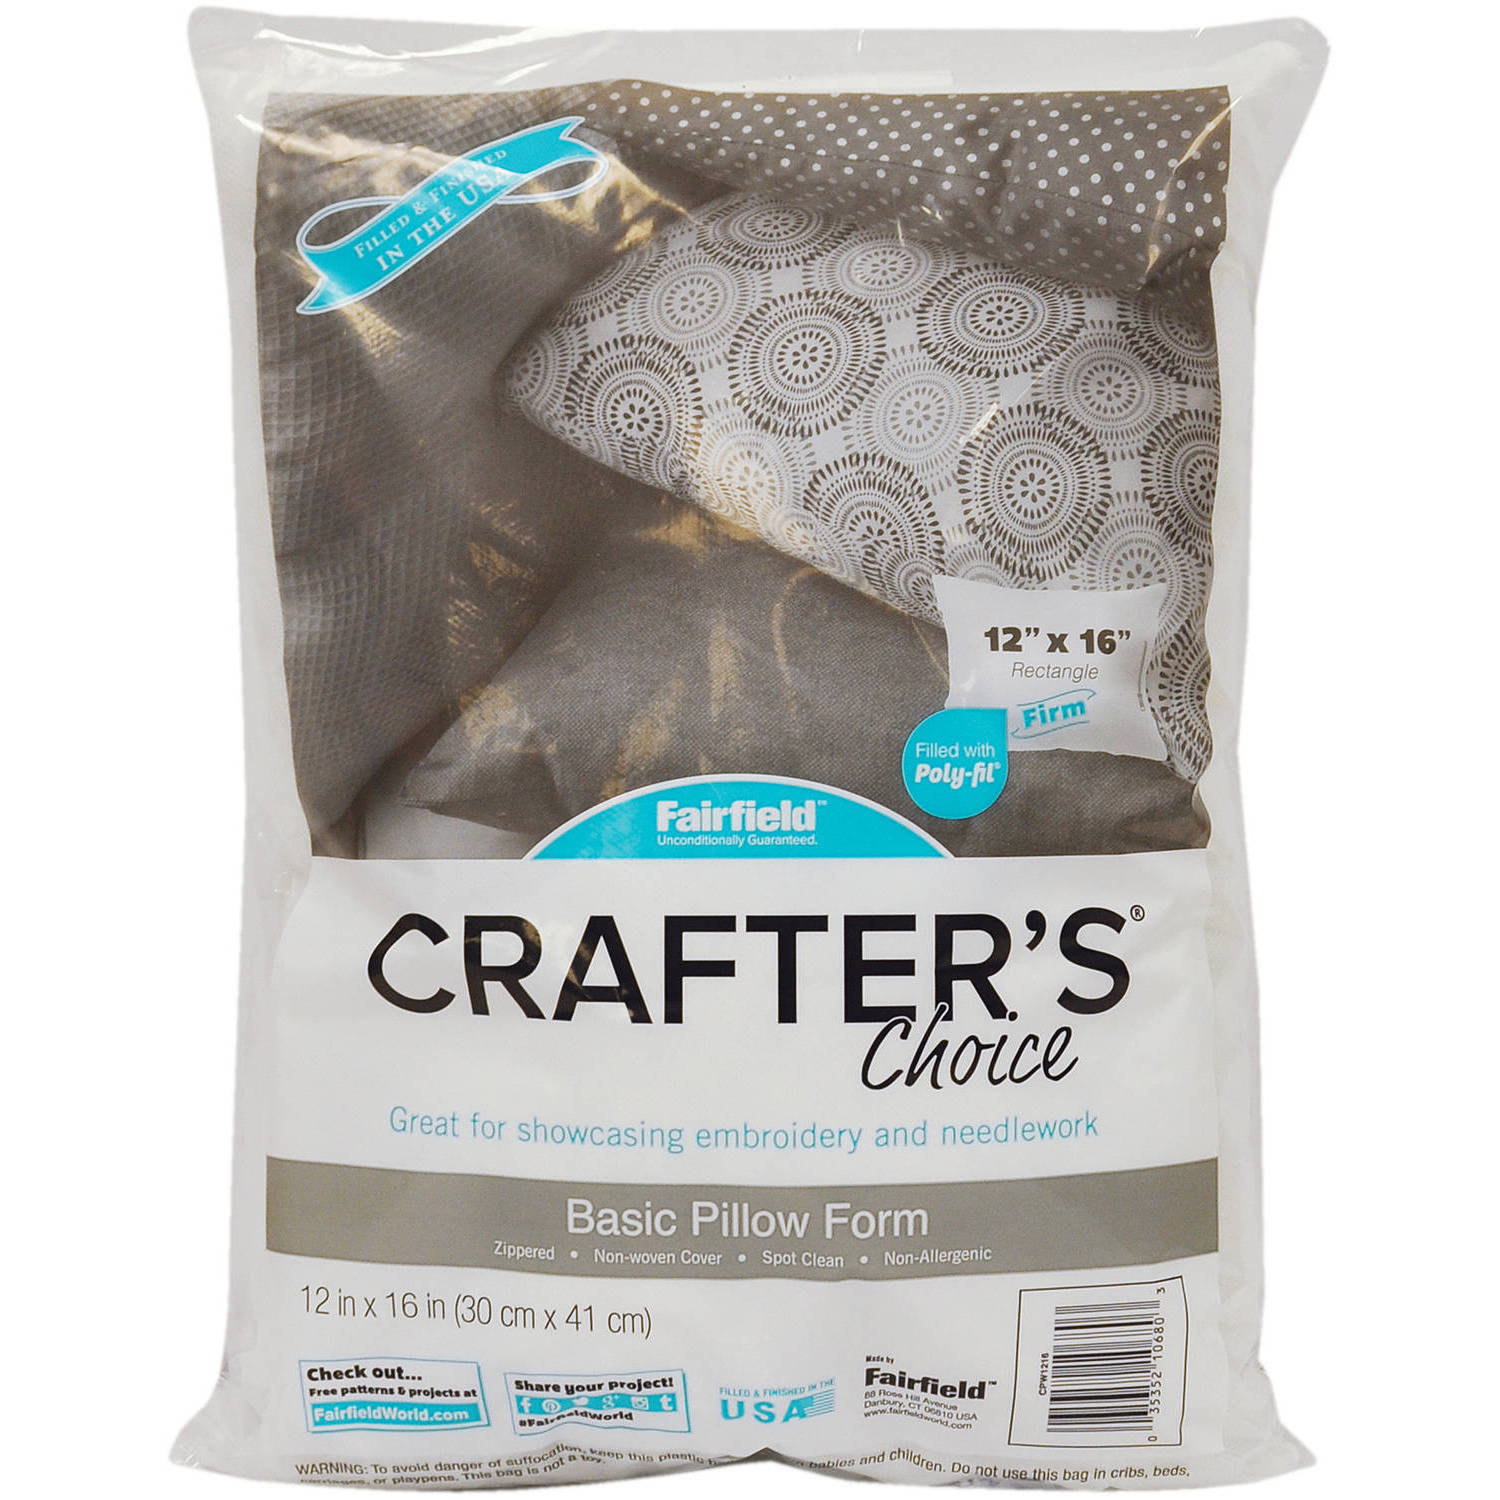 Crafter's Choice Pillow Insert